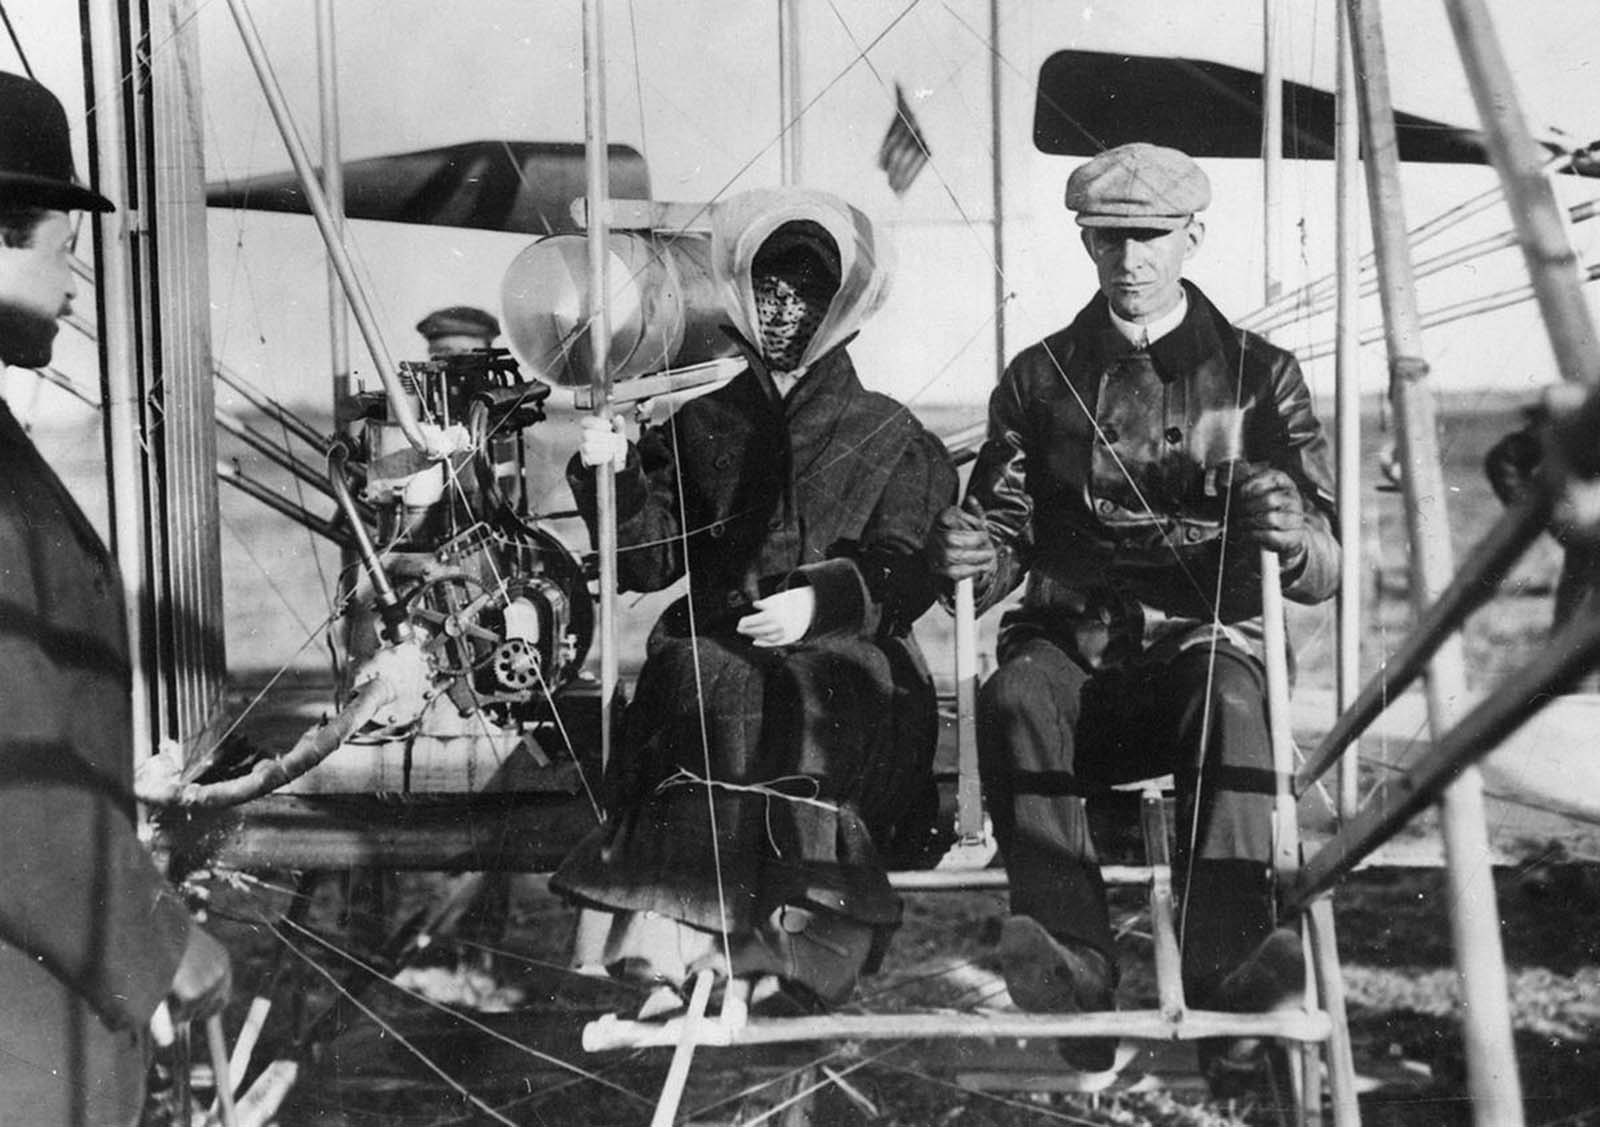 Siblings Orville Wright, Katharine Wright, and Wilbur Wright at Pau, France. Miss Wright about to be taken for her first ride in an airplane. February 15, 1909.